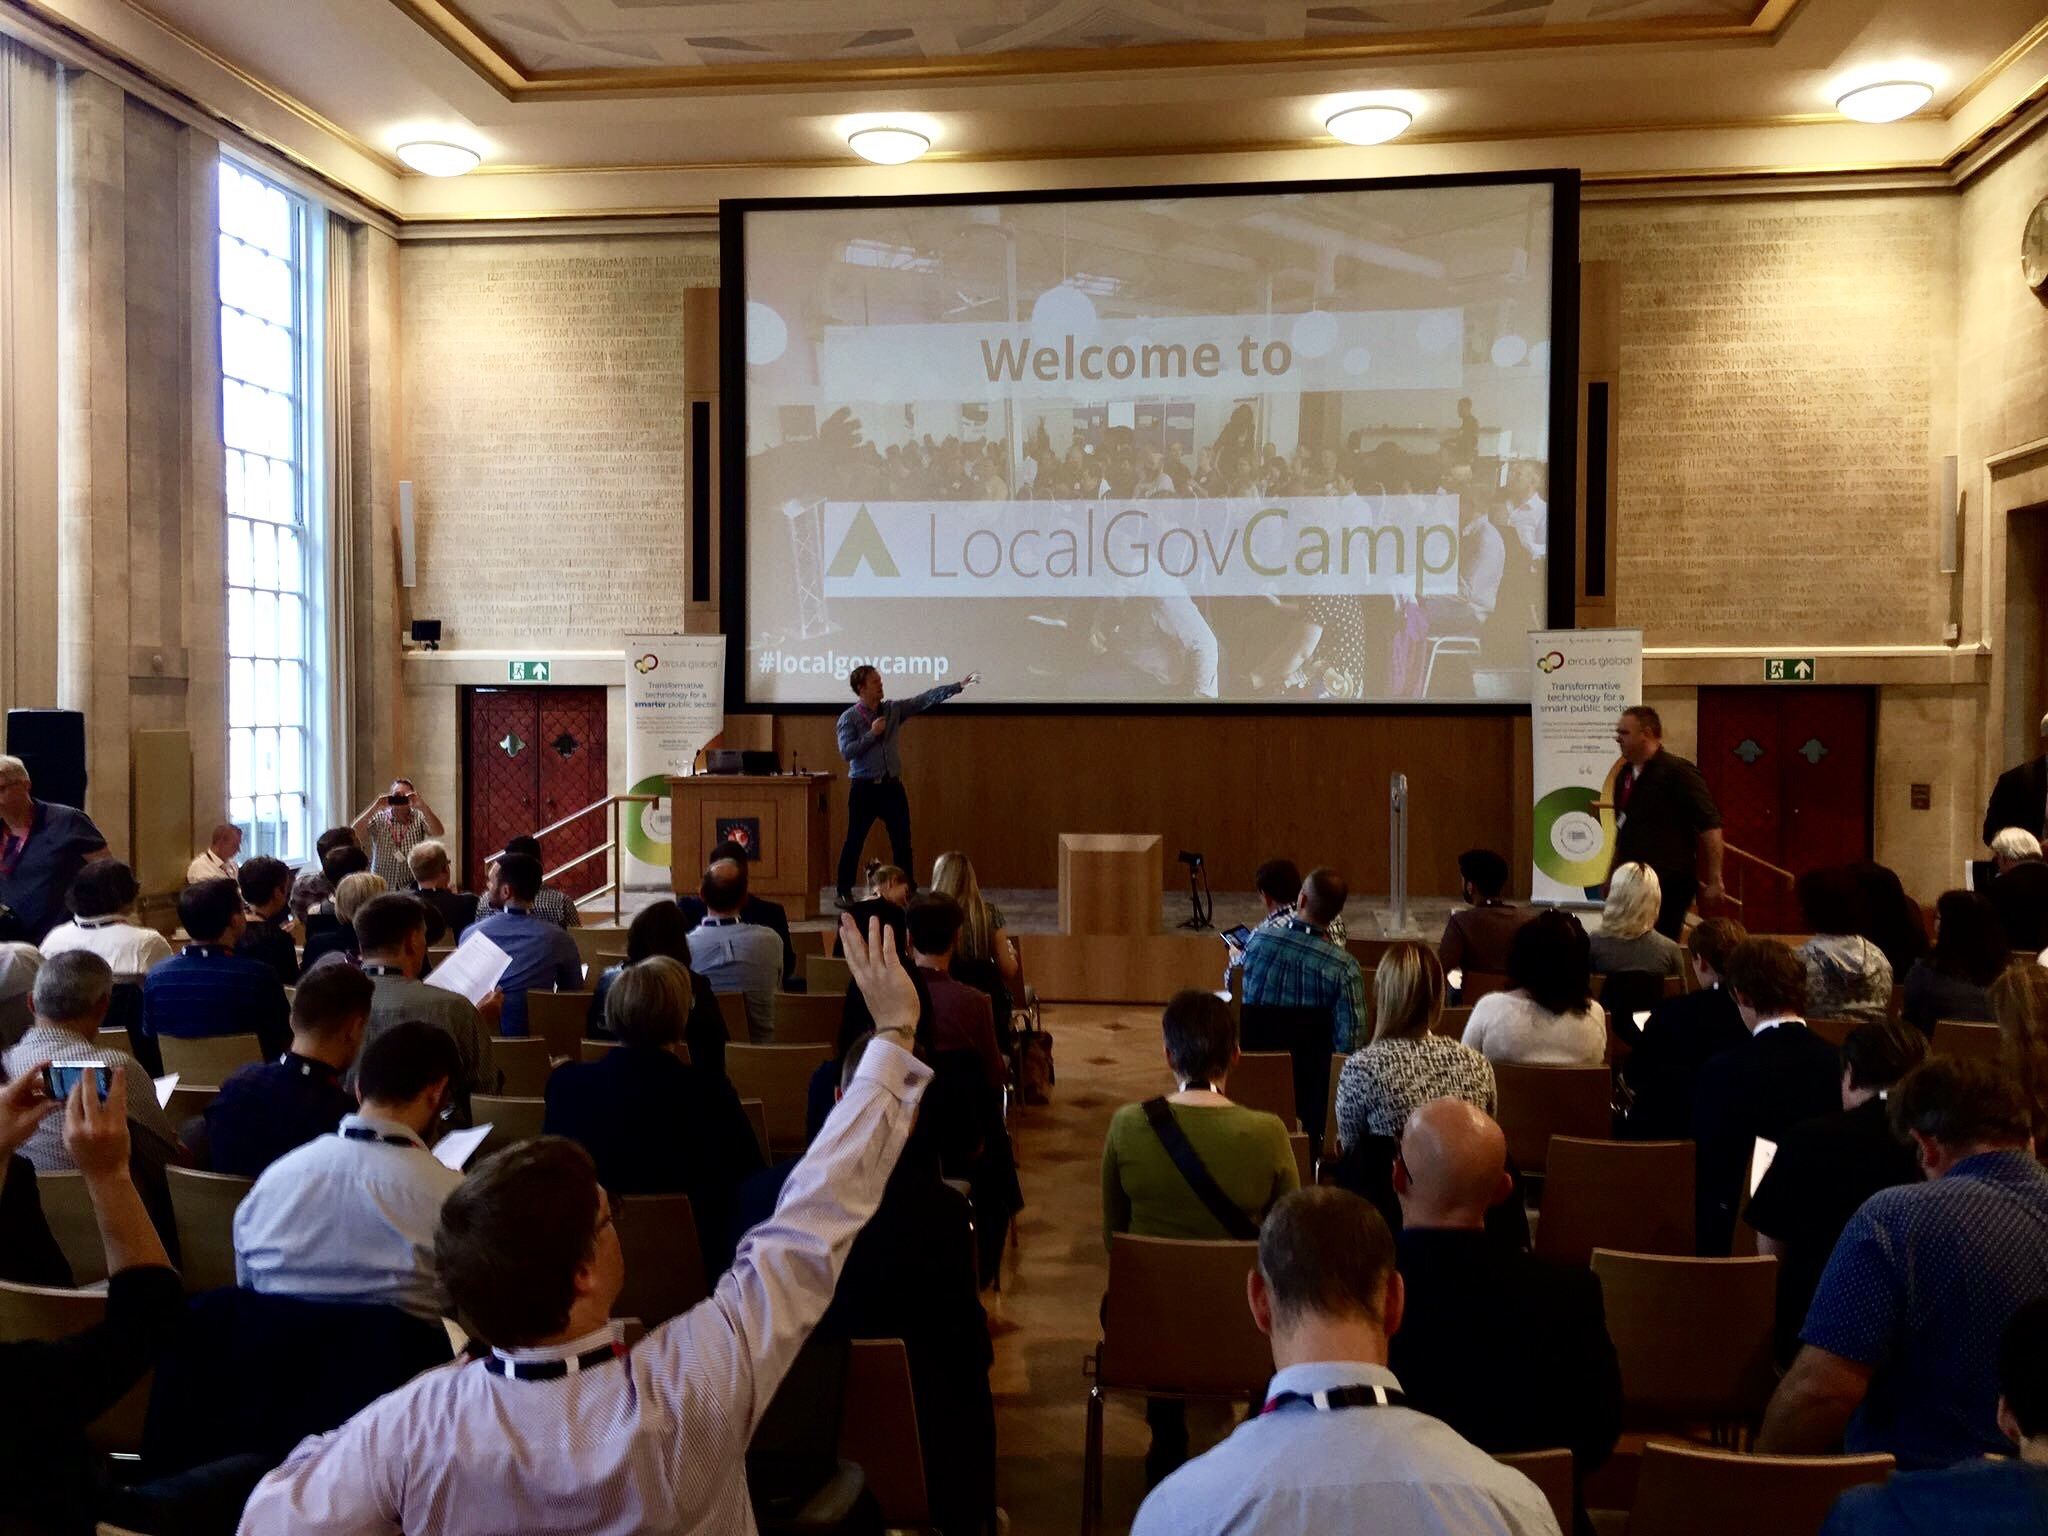 Welcome to LocalGovCamp